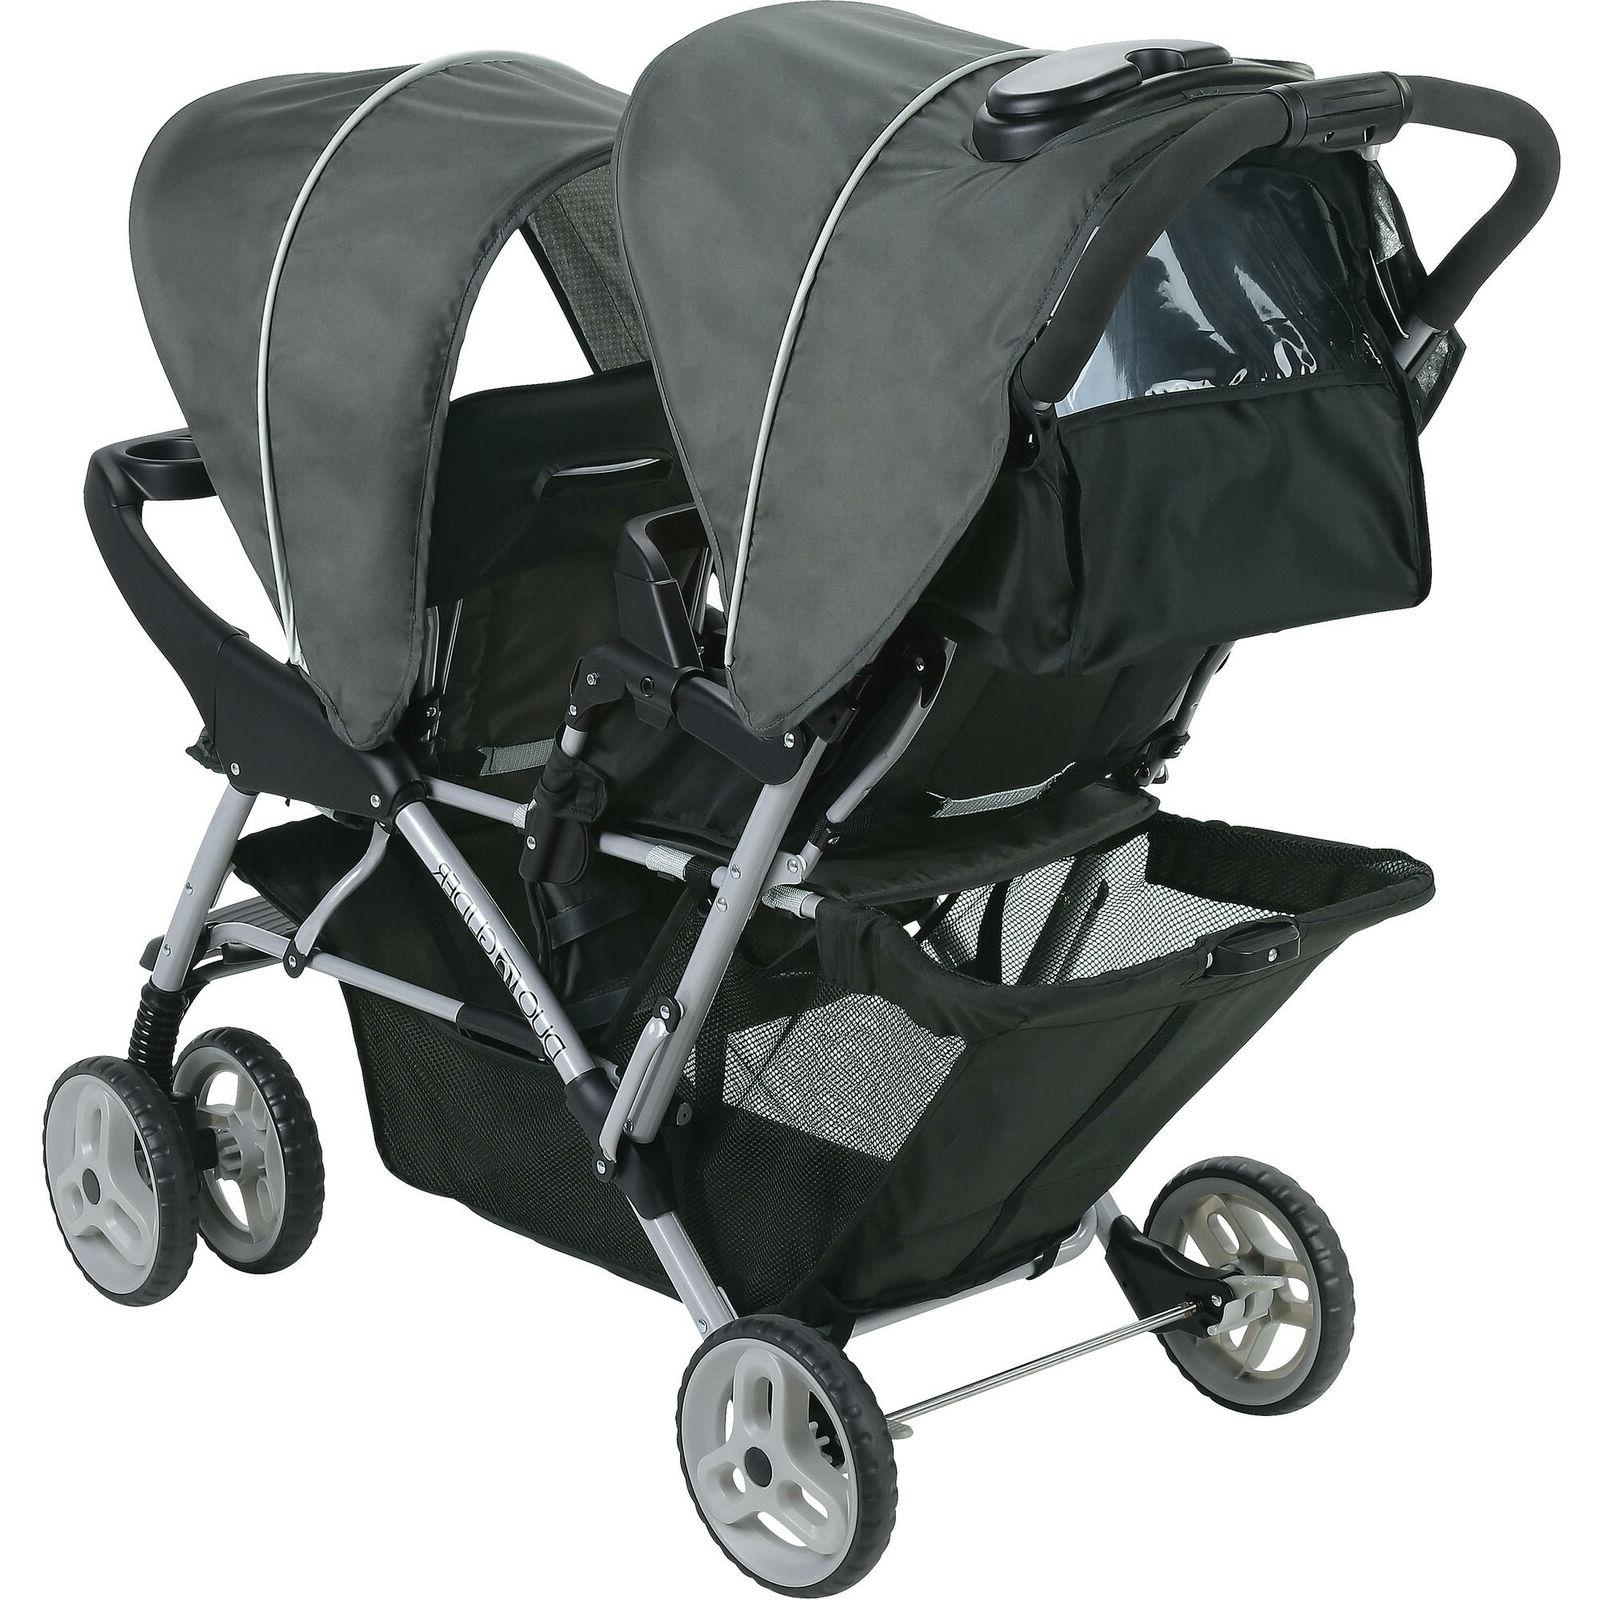 Graco Double | with